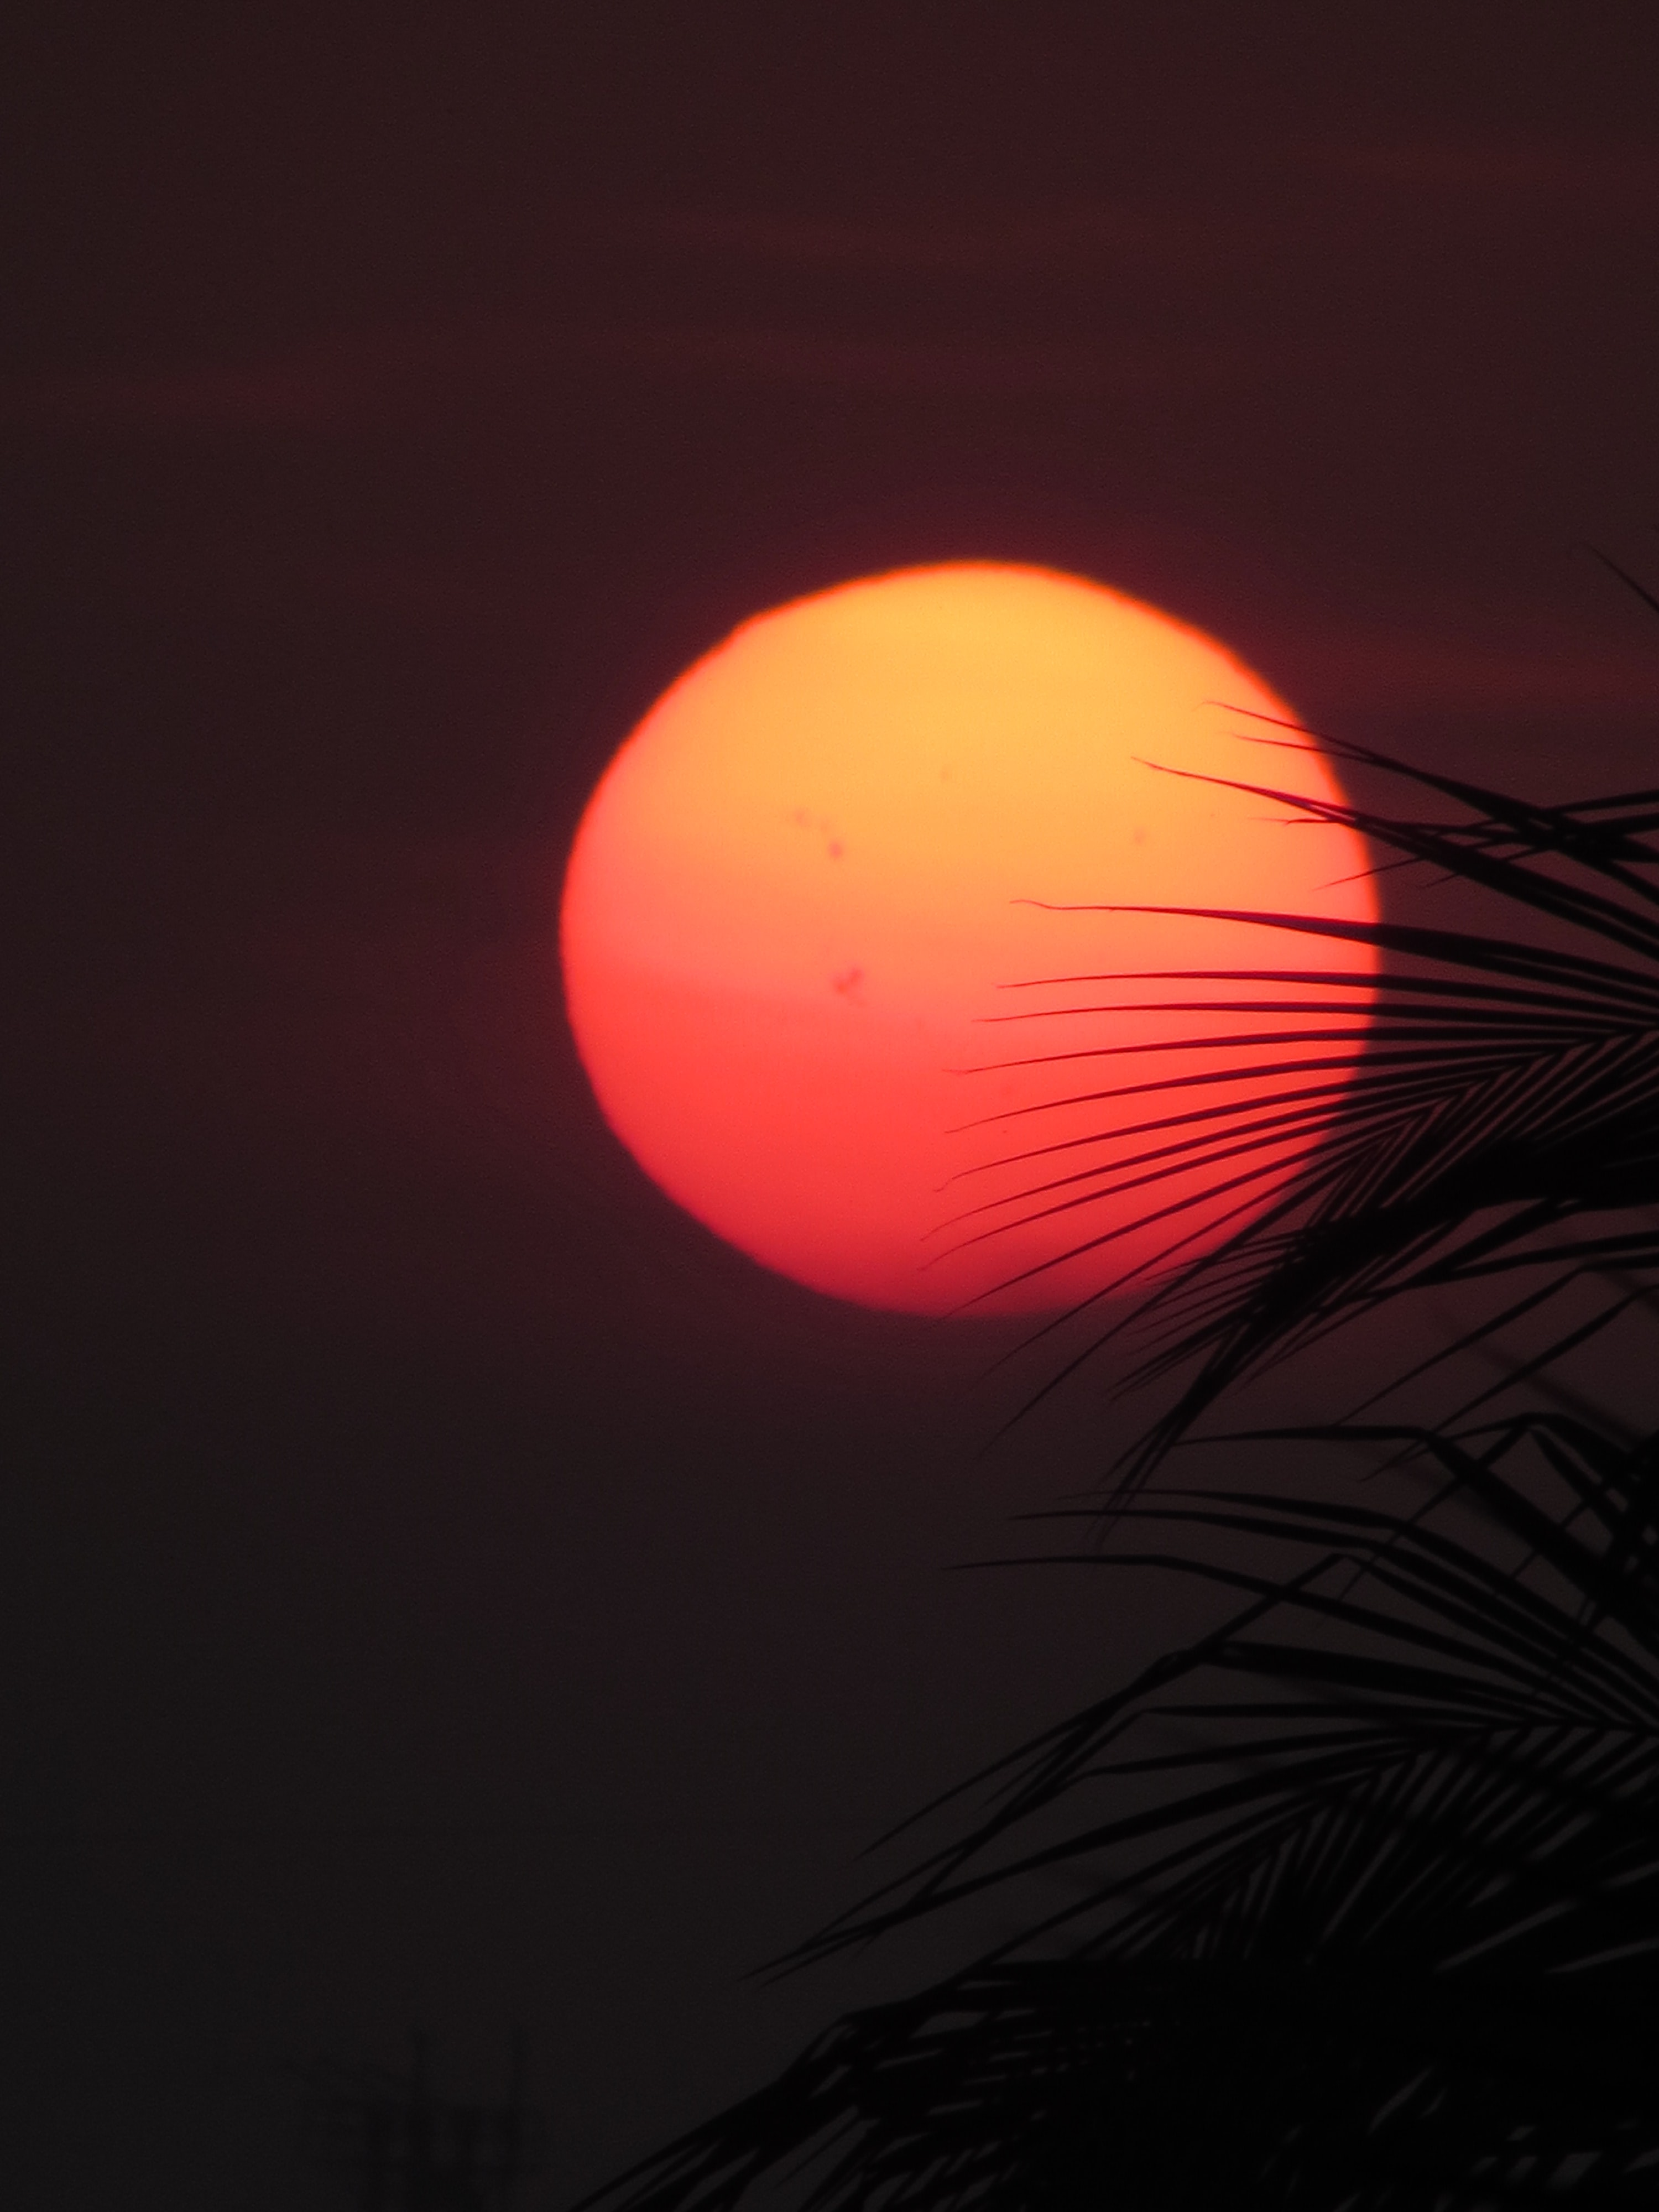 The red and orange sun as seen through silhouetted leafy branches during sunset.